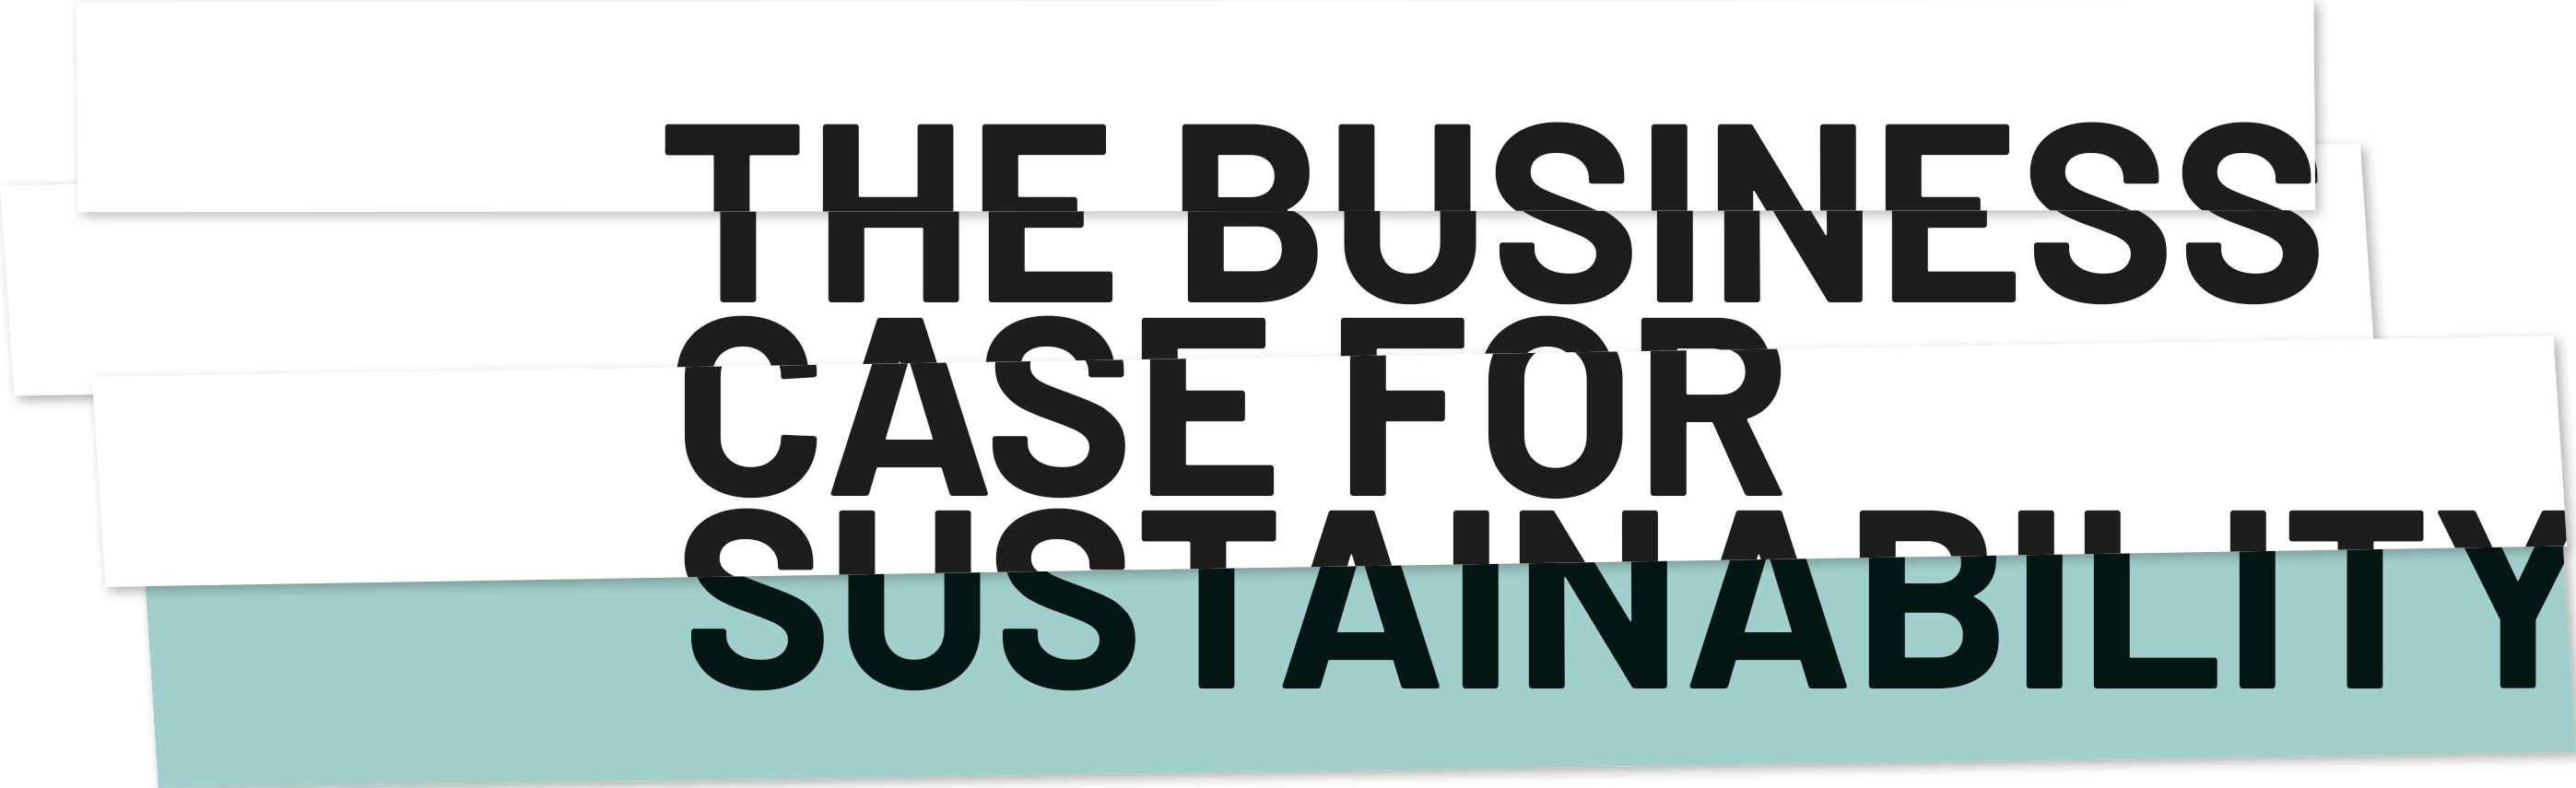 The business case for sustainability.